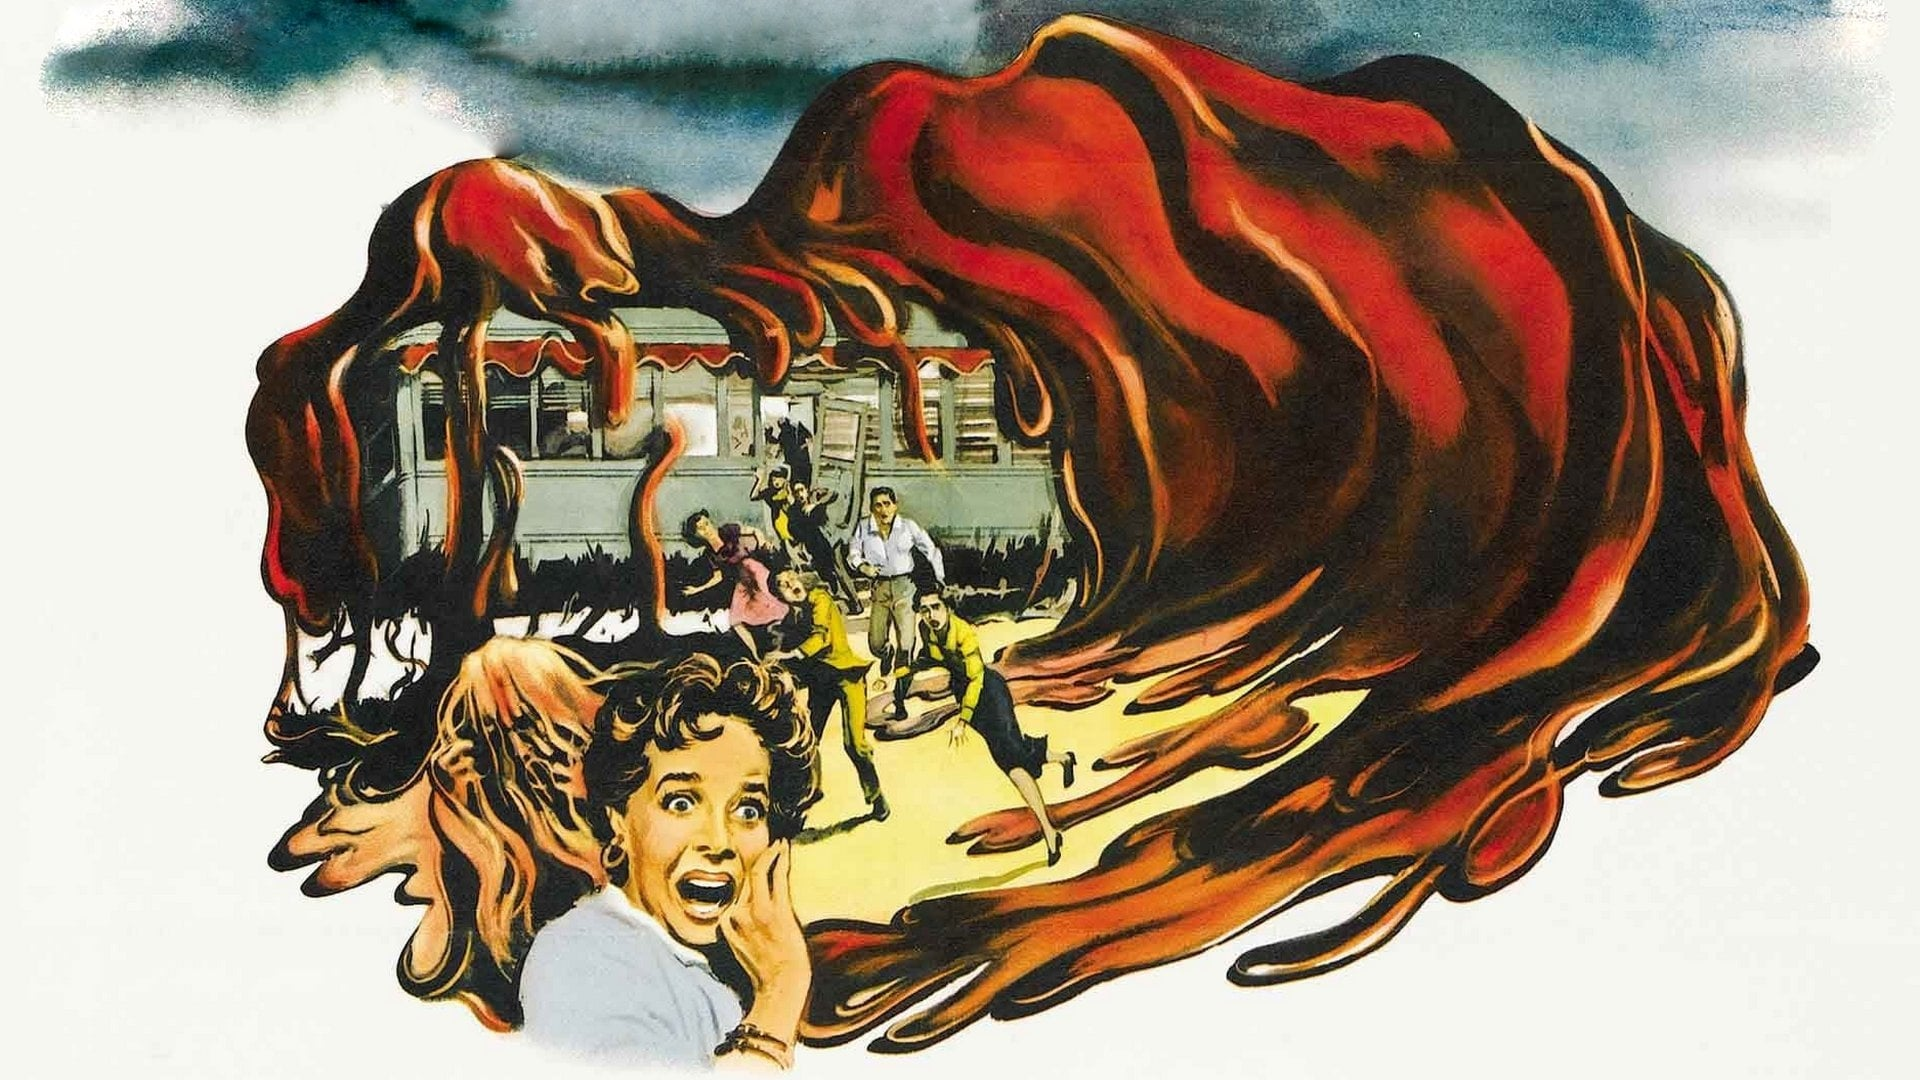 Illustration from The Blob (1958) poster